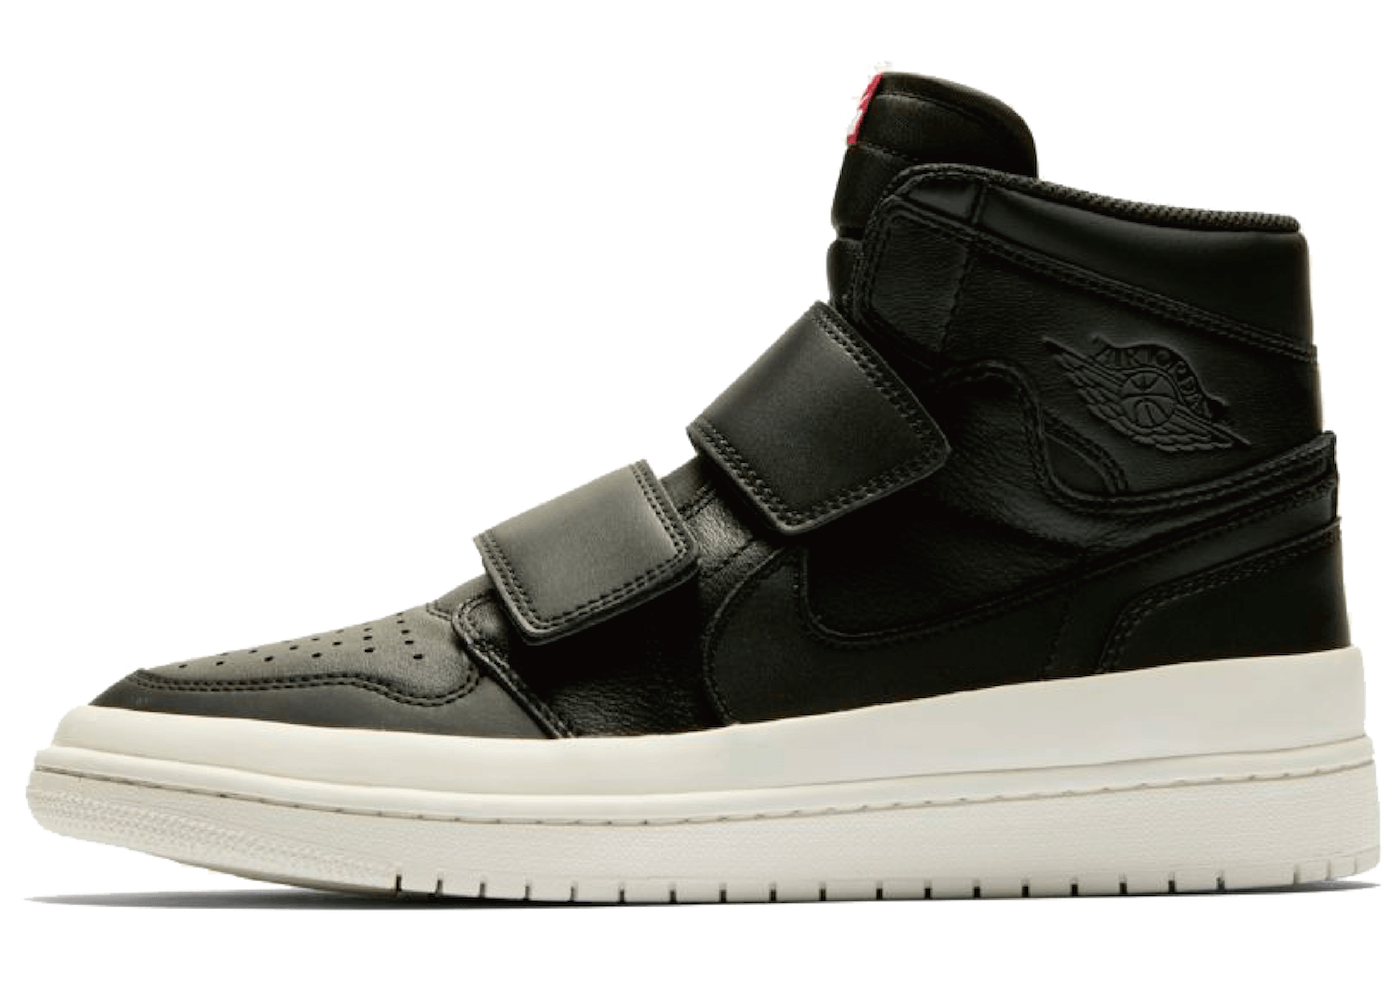 Nike Air Jordan 1 Retro High Double Strapの写真